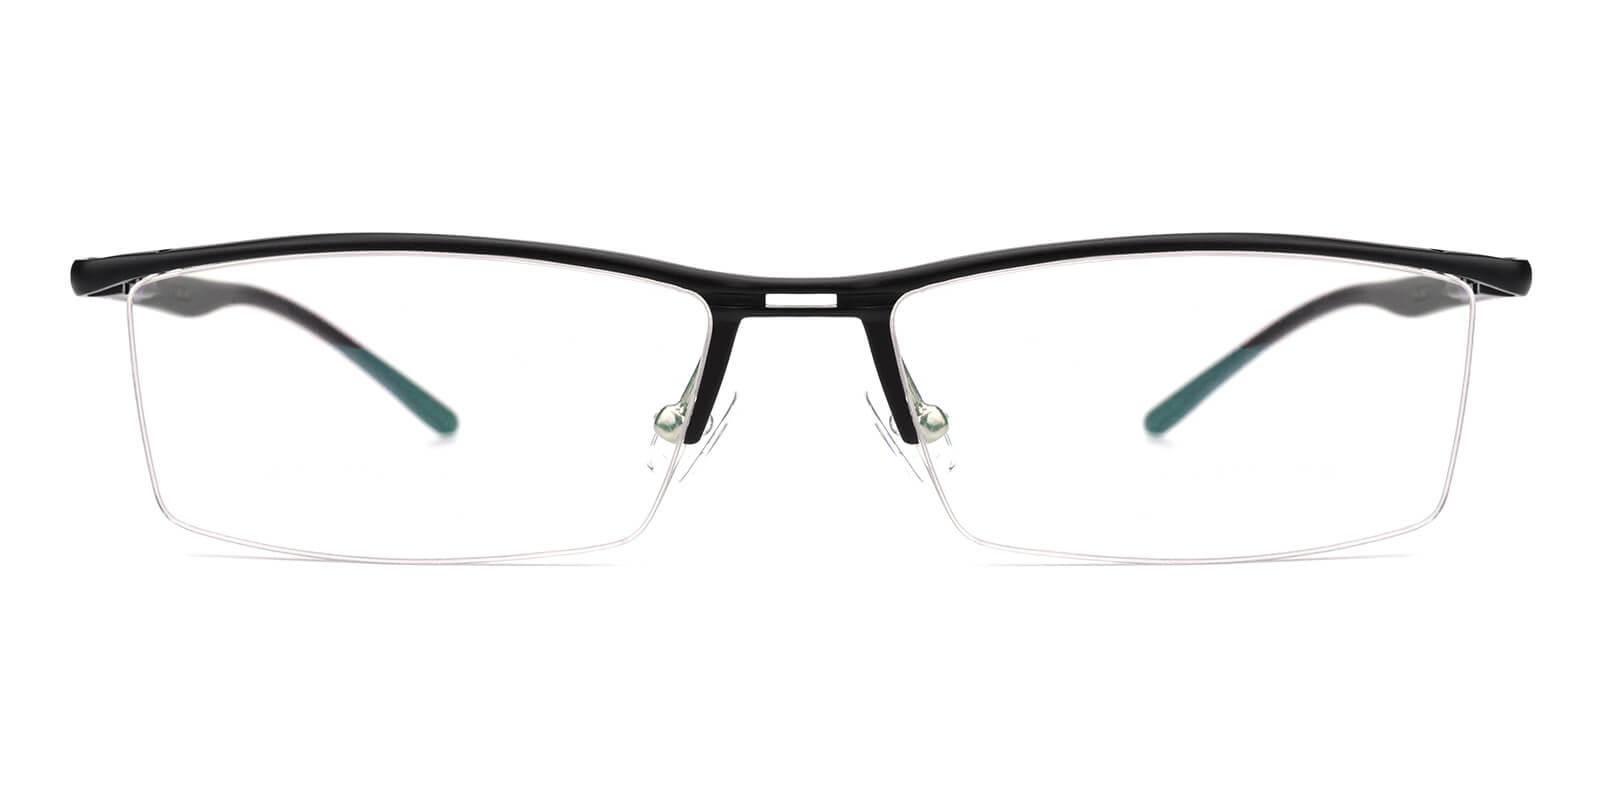 Metalla-Black-Rectangle-Metal-Eyeglasses-additional2